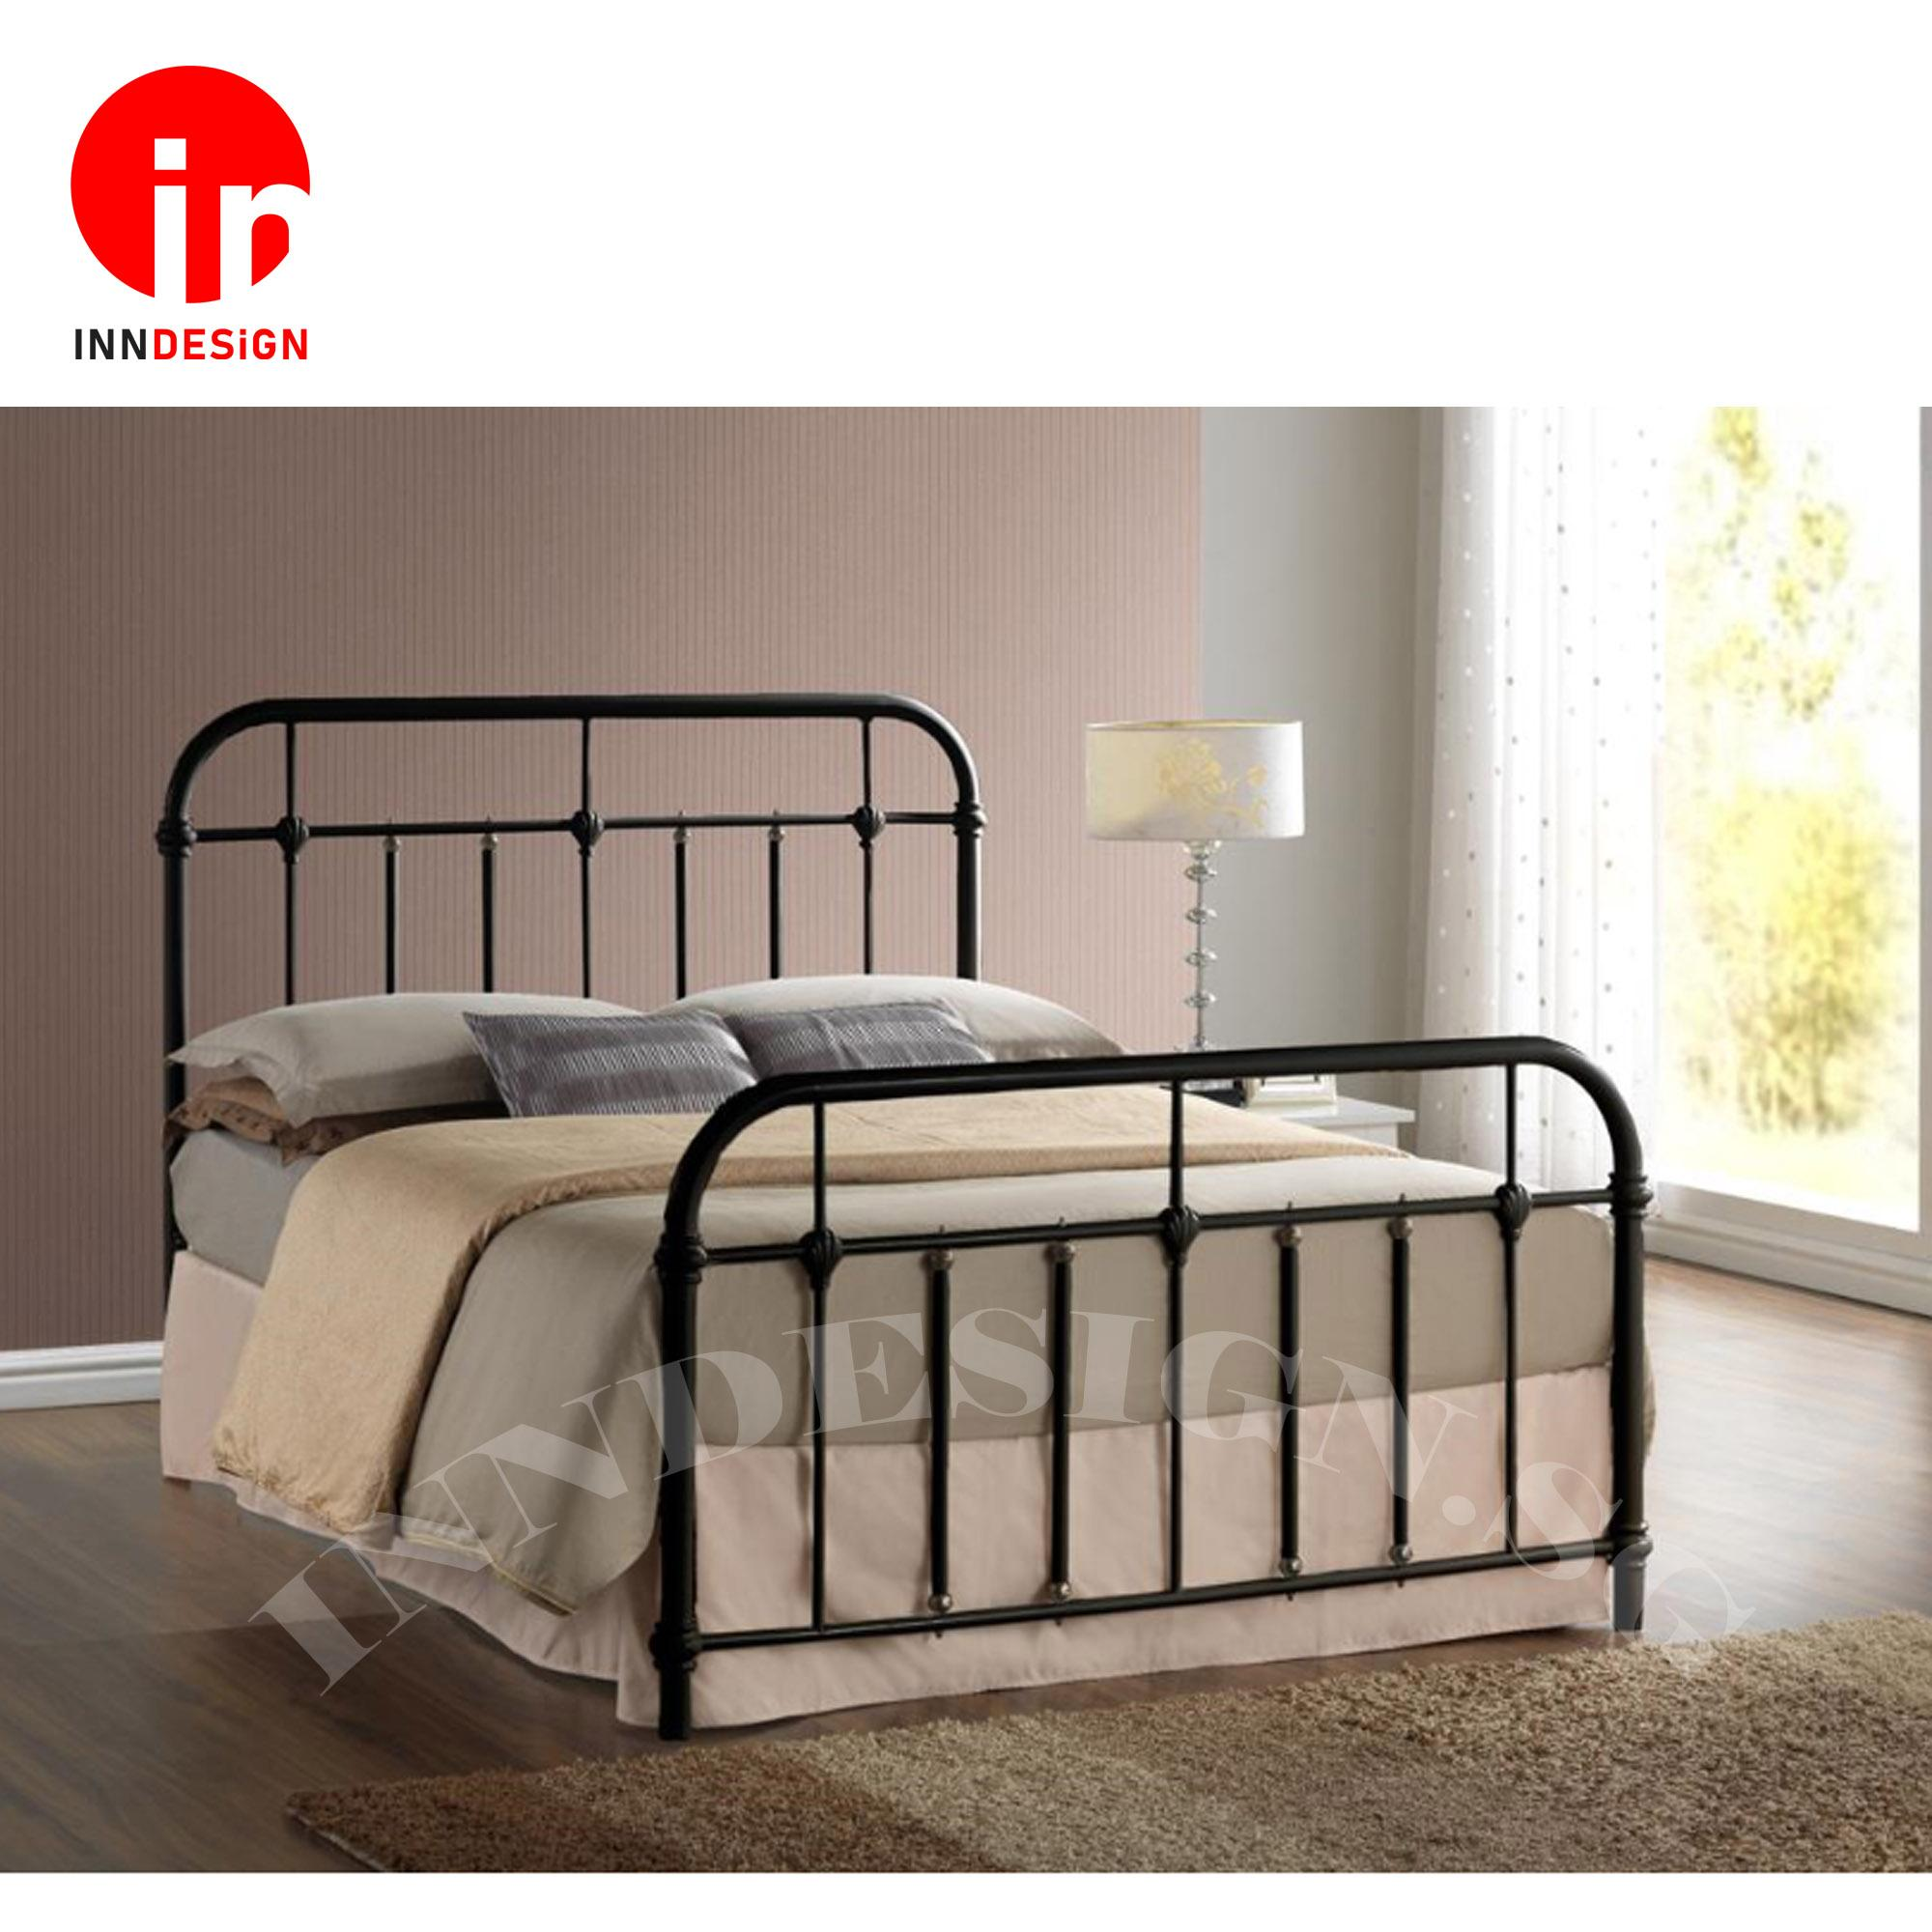 [1 Years Warranty] [FREE INSTALLATION] Ebie Queen Solid Metal Bed / Metal Bed Frame (Queen) (Black)